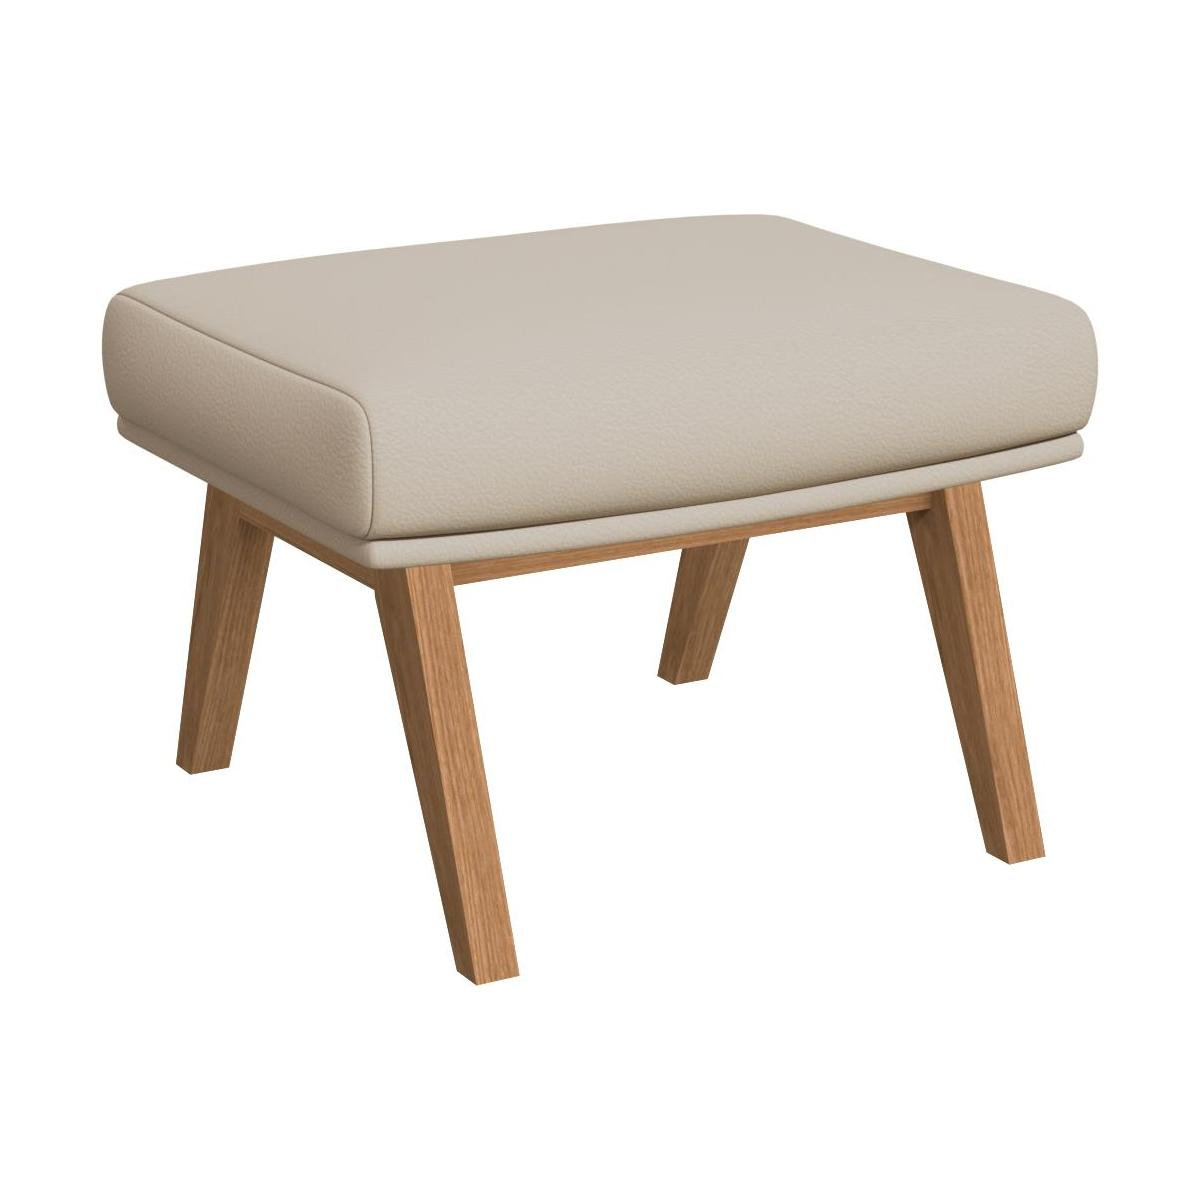 Footstool in Savoy semi-aniline leather, off white with oak legs n°1